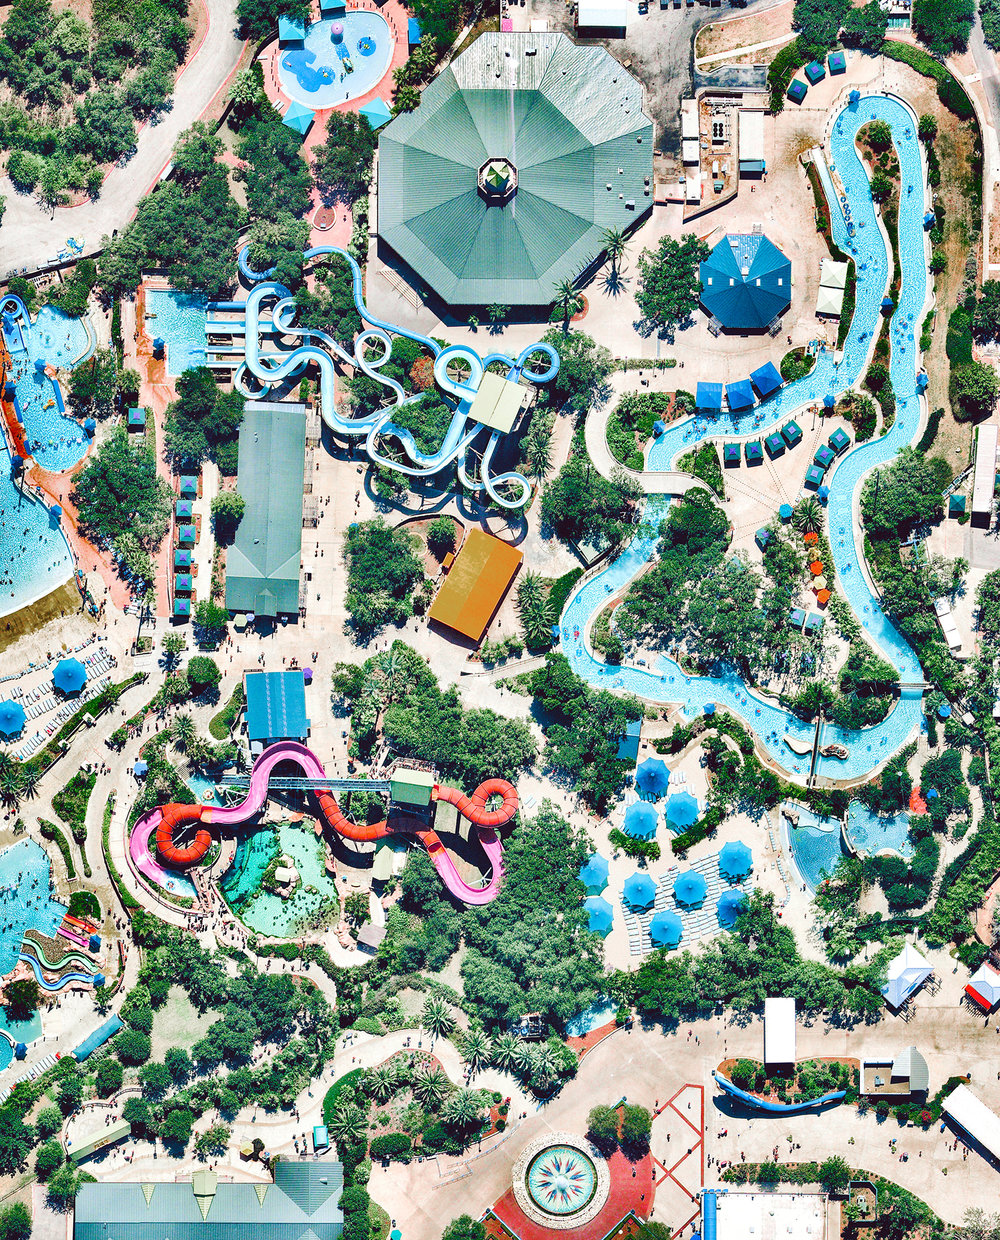 "Check out this Overview of Aquatica, a water park in San Antonio, Texas. Constructed in 2012, Aquatica boasts several water slides, pools, a 42,000-square-foot beach area, an aviary, and its signature ""Stingray Falls,"" a family raft ride that runs through an underground grotto full of stingrays and tropical fish.  29°27'30.3""N, 98°41'53.3""W  Source imagery: Nearmap"